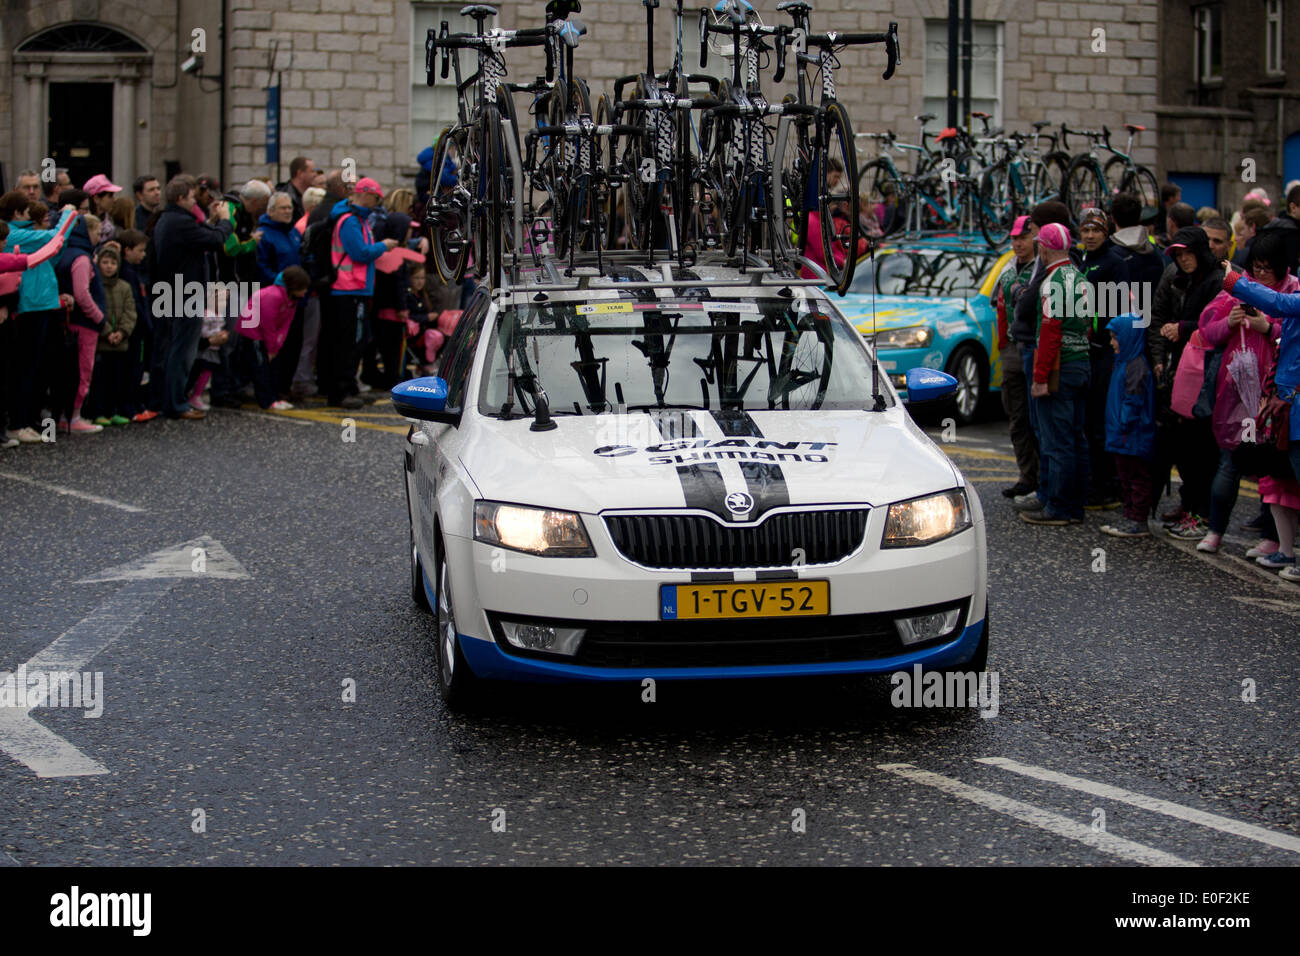 armagh city, northern ireland, 11 may 2014. team car giant-shimano